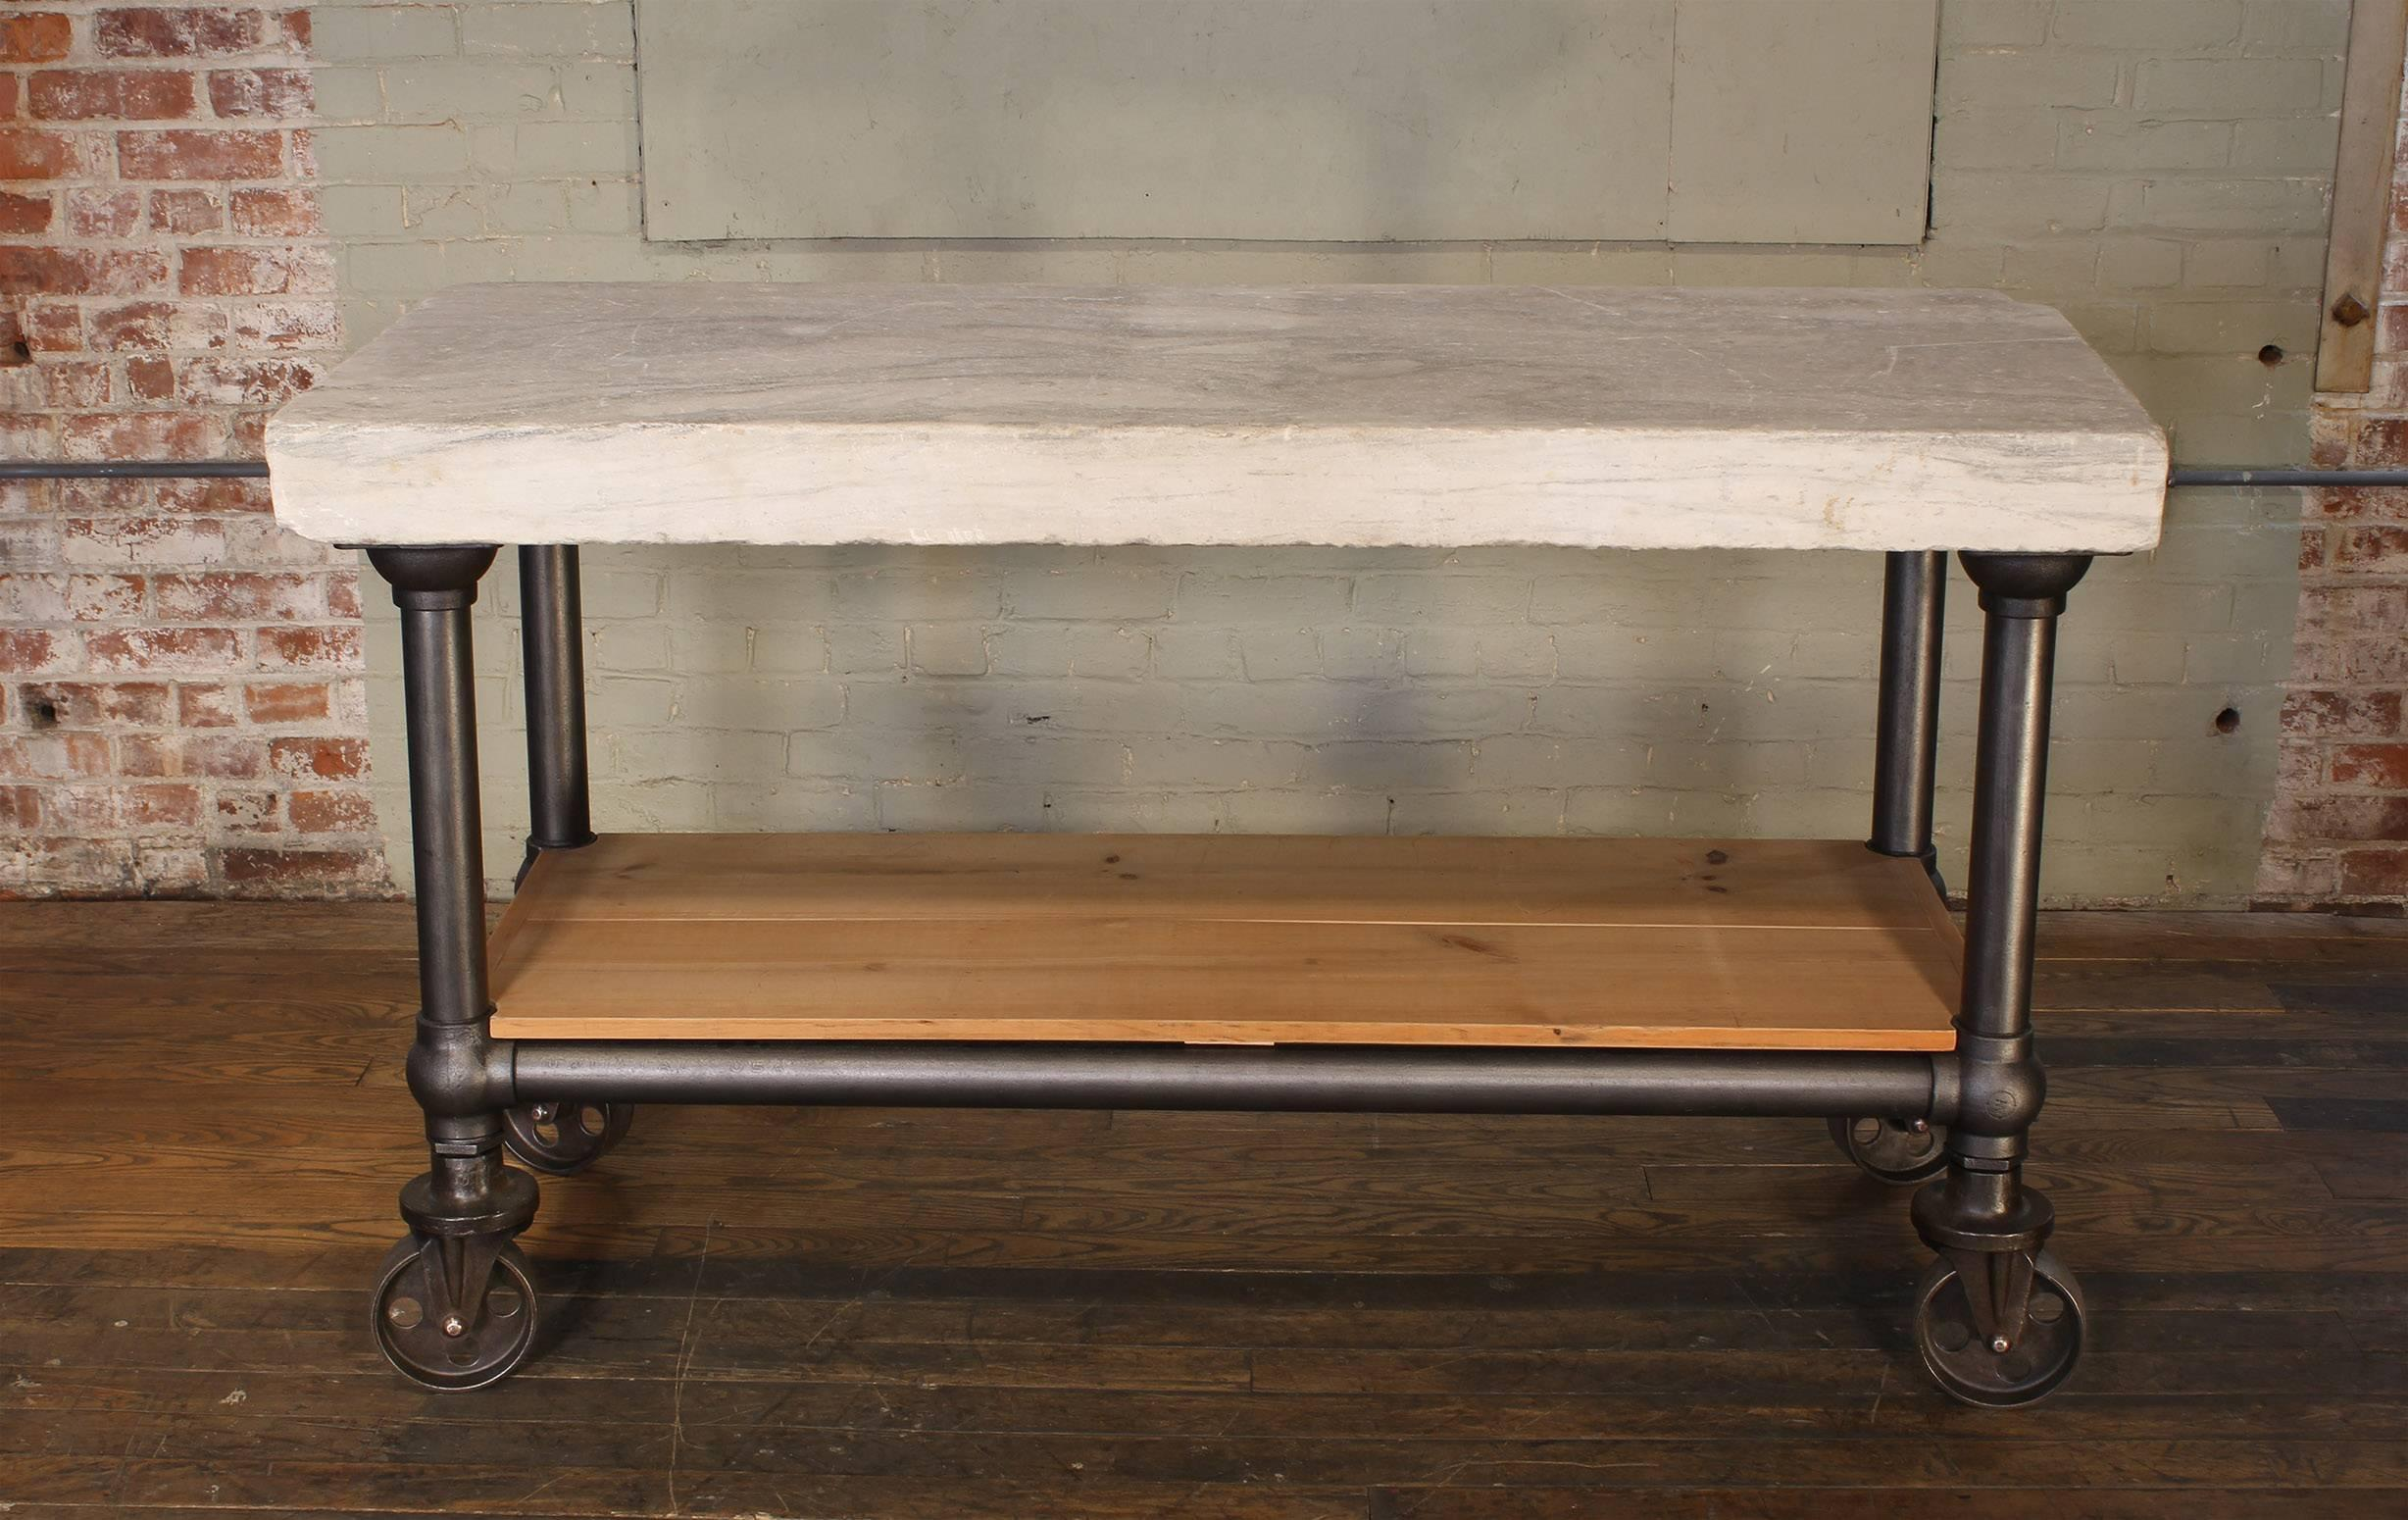 Industrial Marble Slab Kitchen Island Rolling Table at 1stdibs